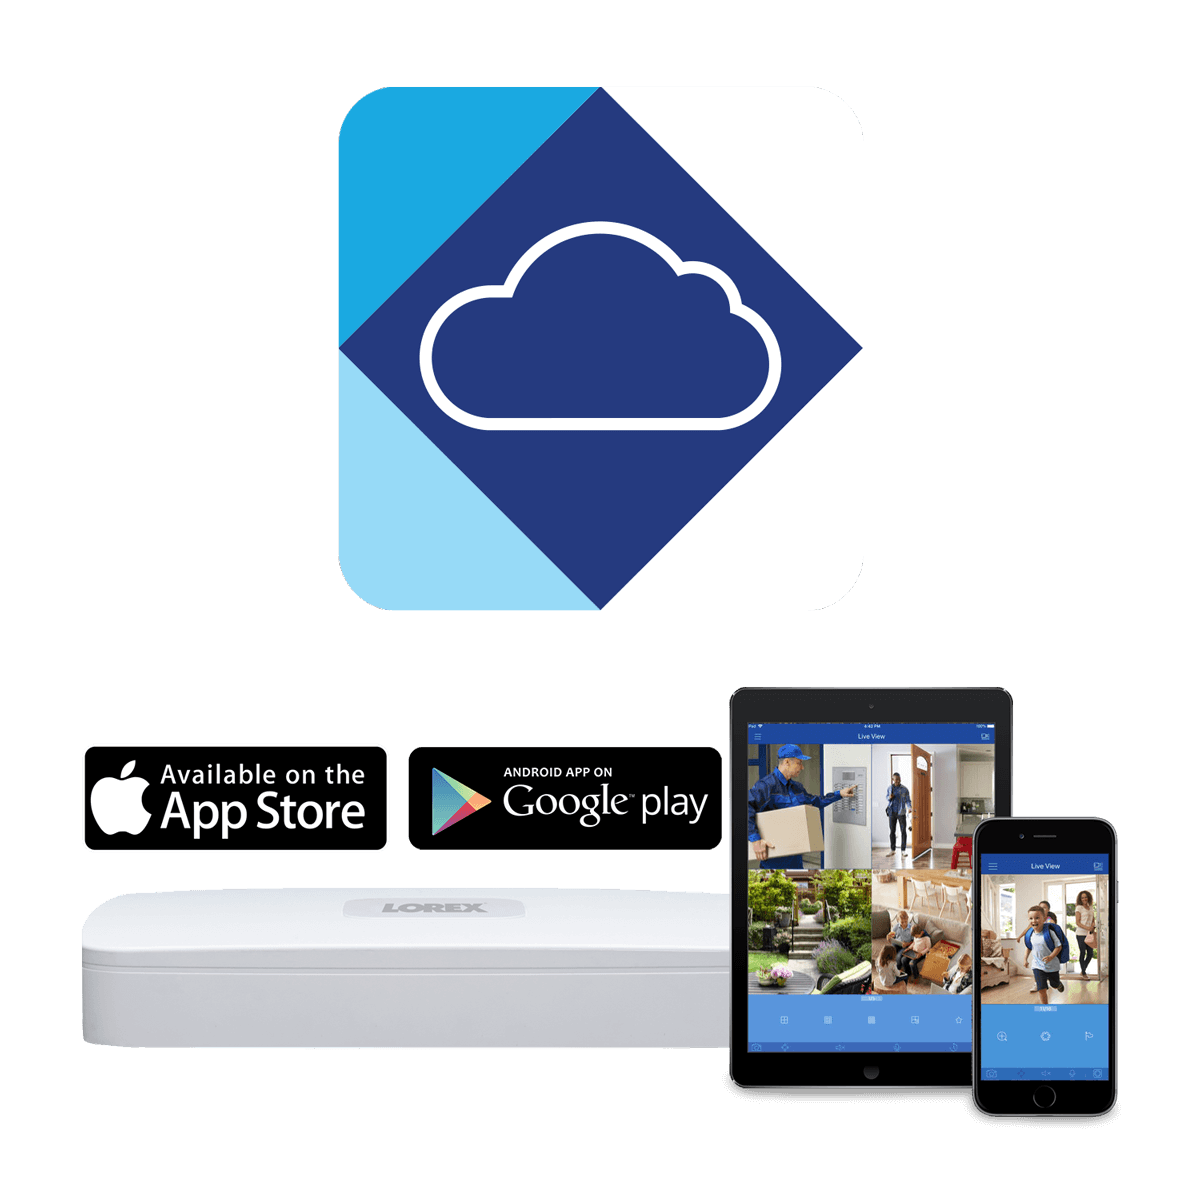 Lorex Cloud app keeps you connected to your home at all times